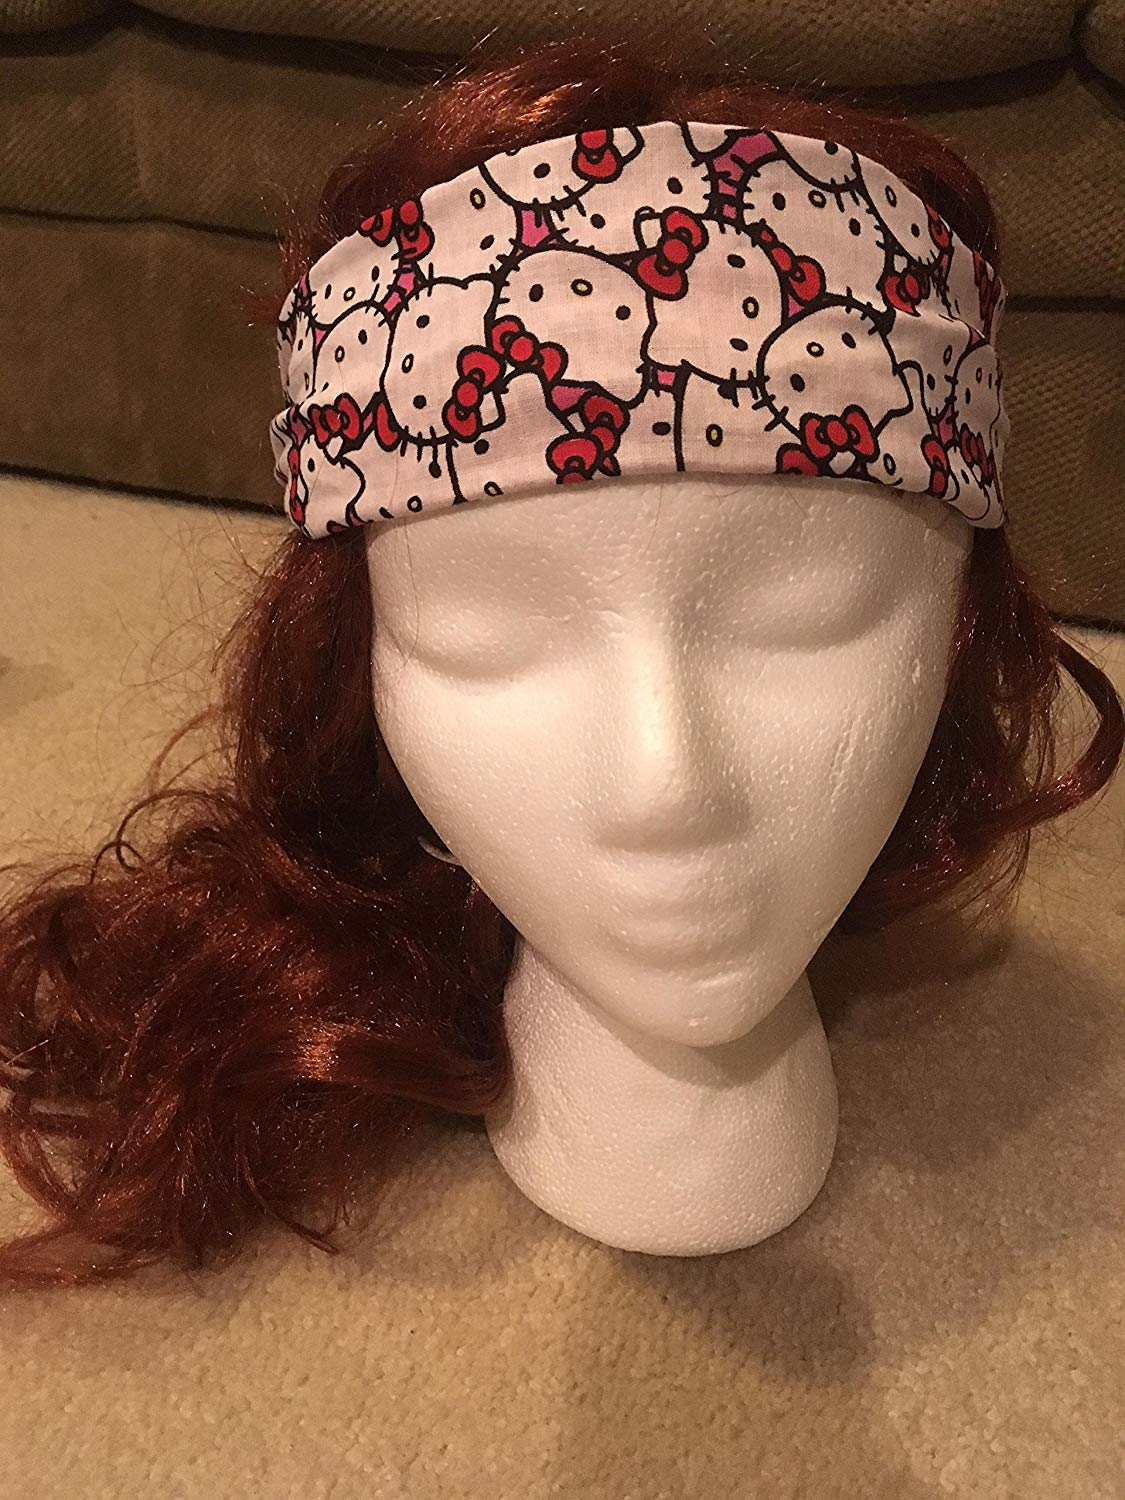 42a302a26 Get Quotations · Pink & White Hello Kitty Handmade Headband, Cute  Reversible 2-in-1 Sweatband